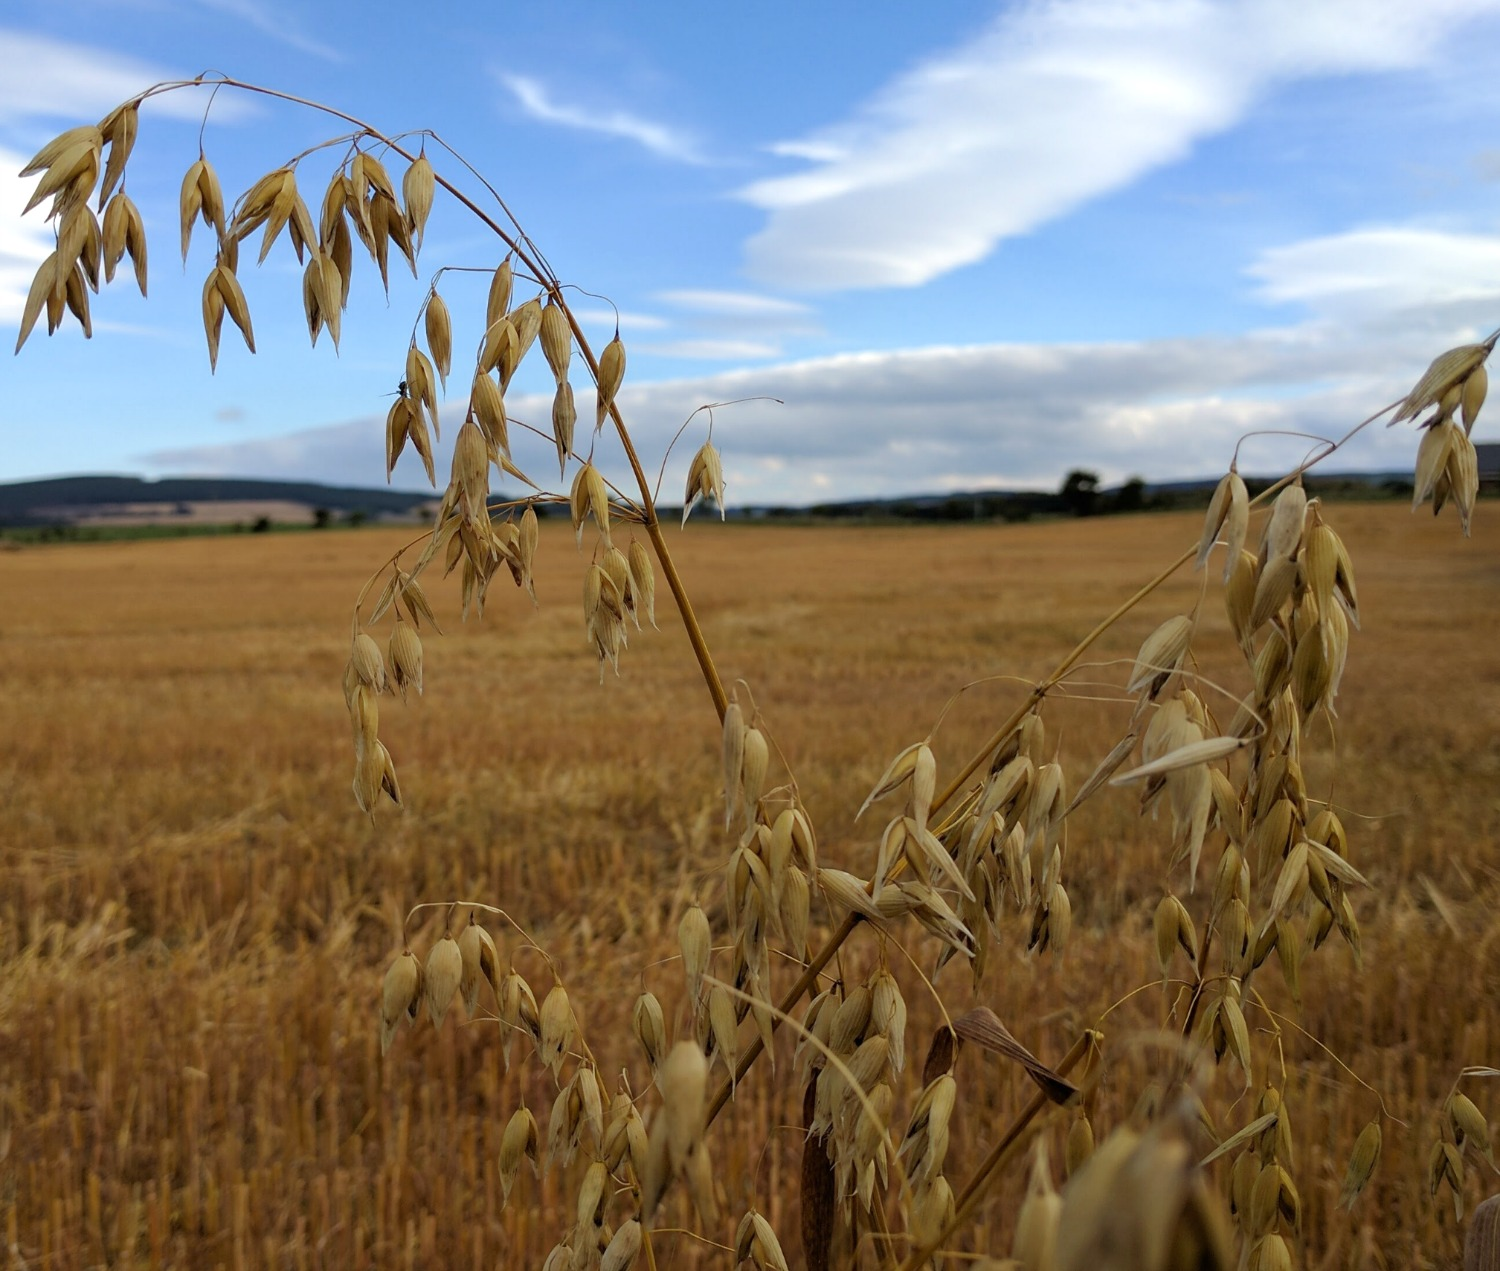 Scottish home-grown food. The field of oats has just been harvested and only some stray plants on the edge of the field missed the combine harvester's cutter-bar.